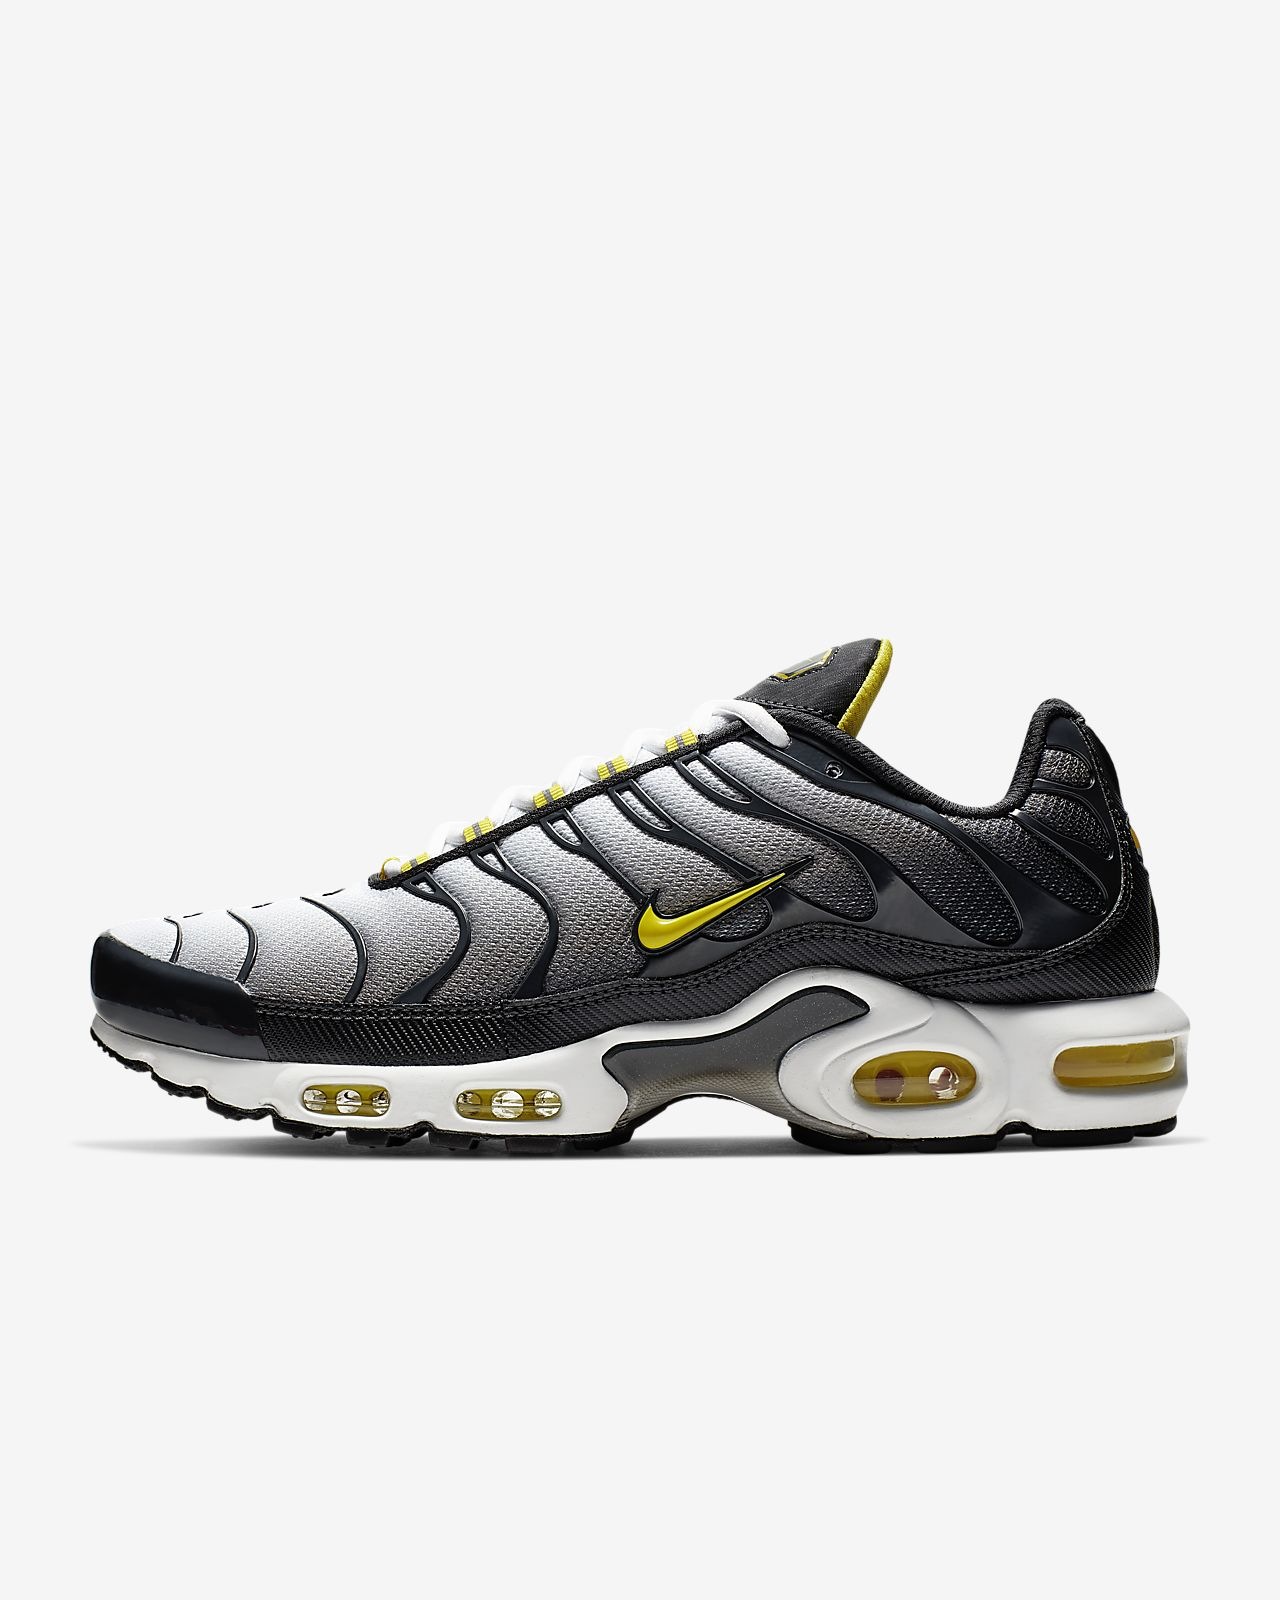 Details about Nike Air Max Plus TN Men's Running Trainers Shoes ON Sale Free shipping